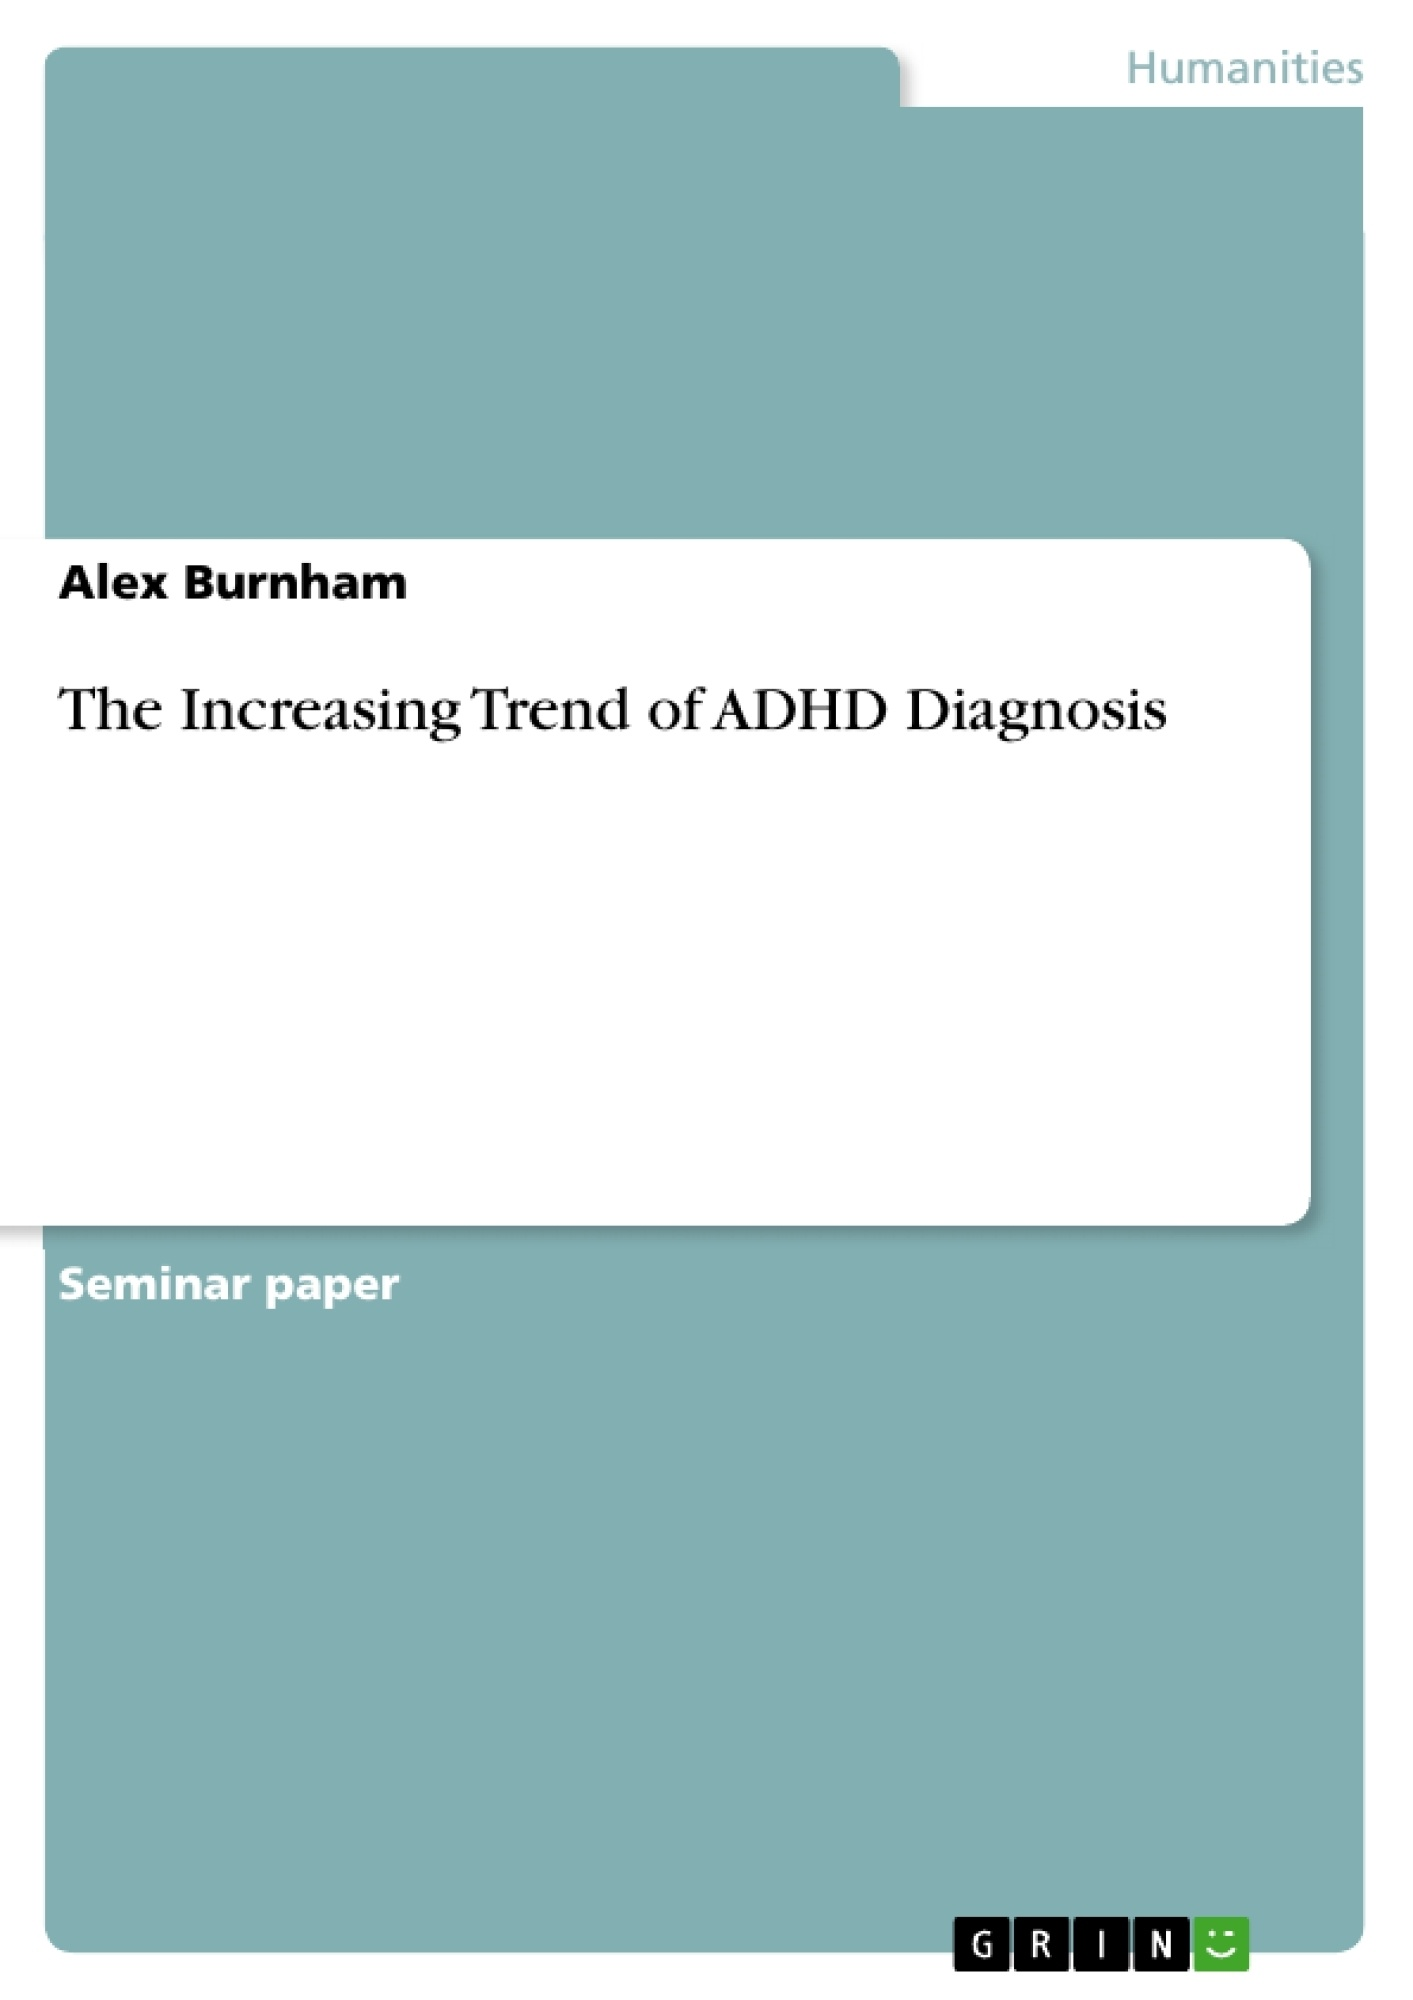 Title: The Increasing Trend of ADHD Diagnosis